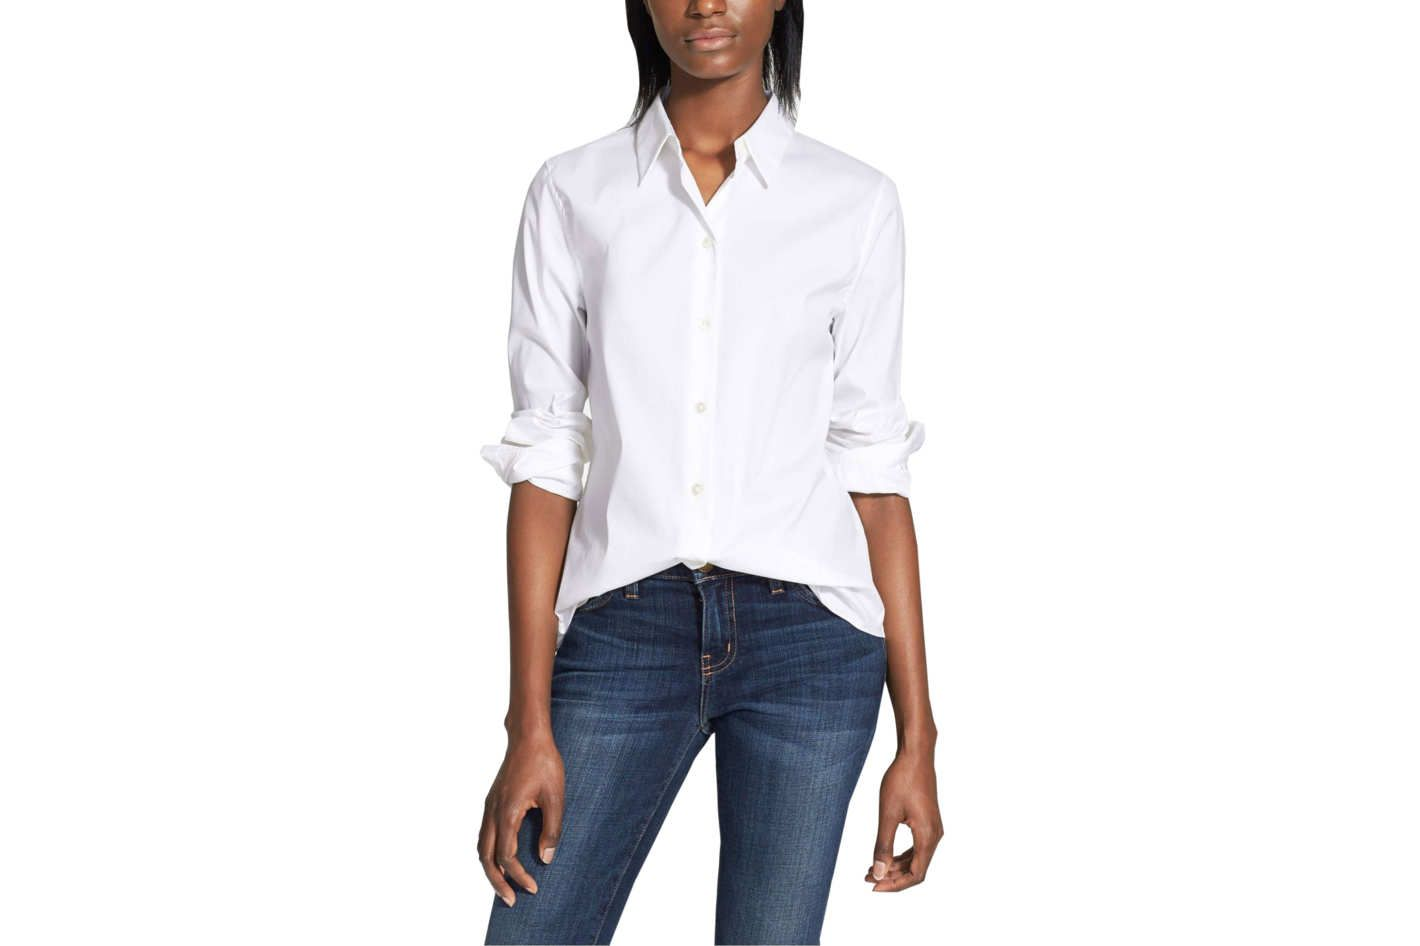 The Best White Button Down Shirts For Women Shop Pinterest